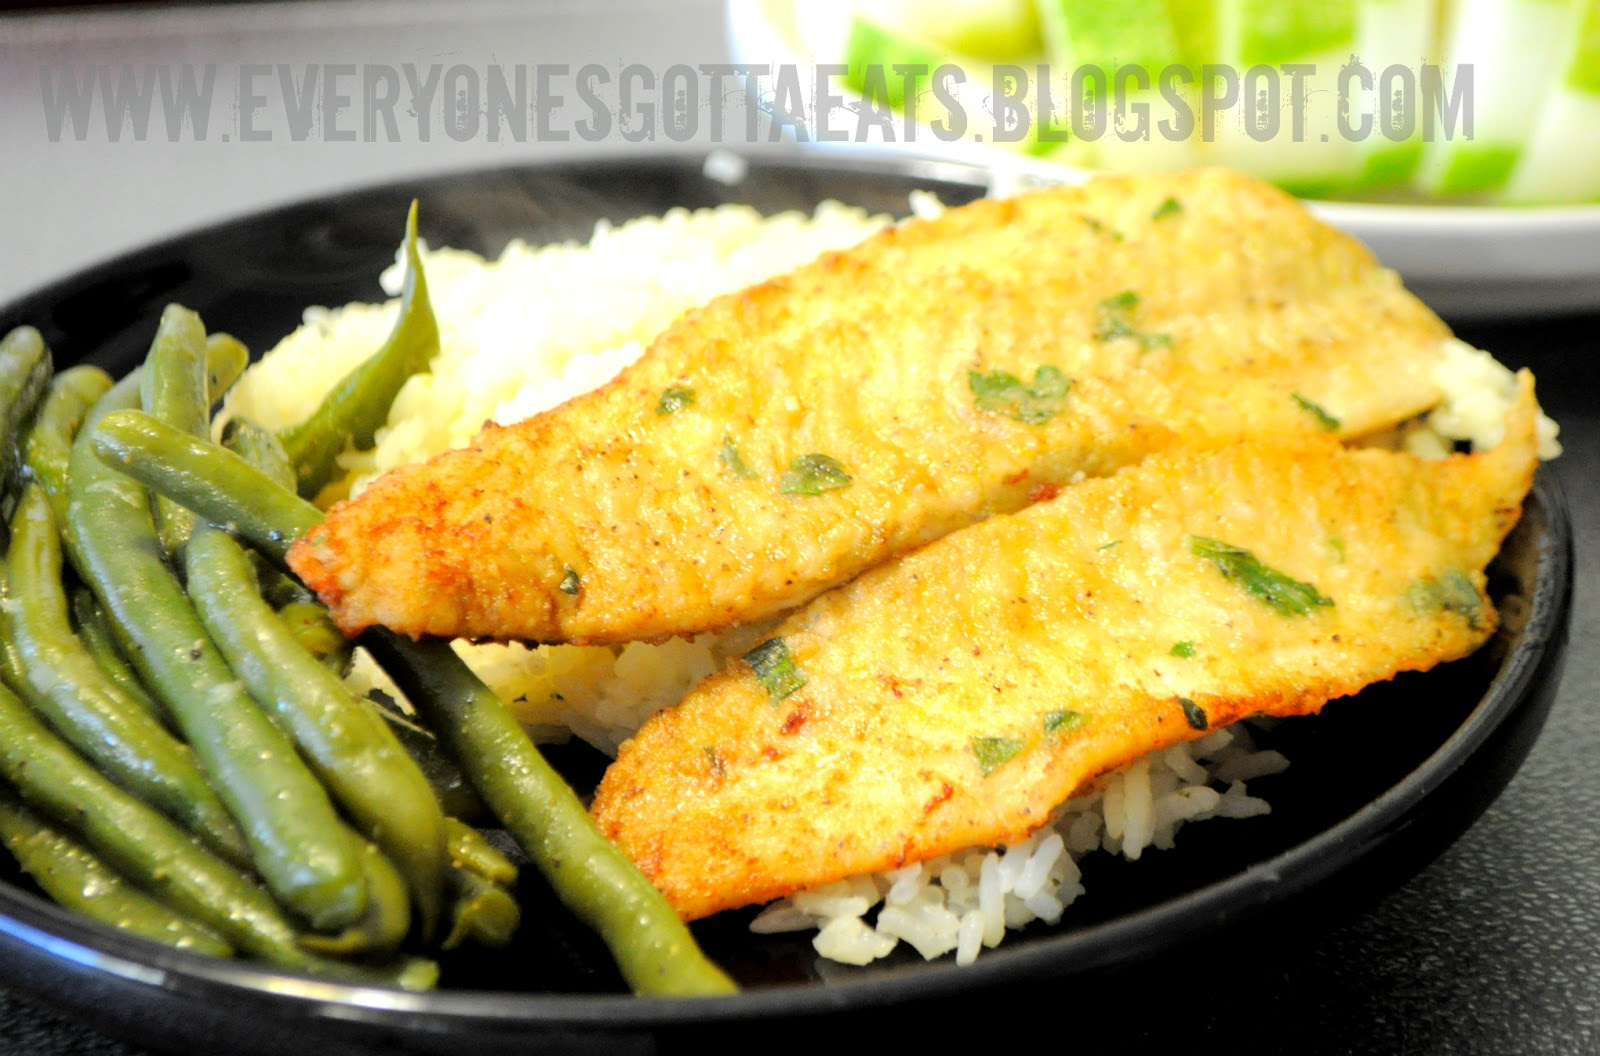 ... and came upon this pan fried flounder recipe adapted from the food